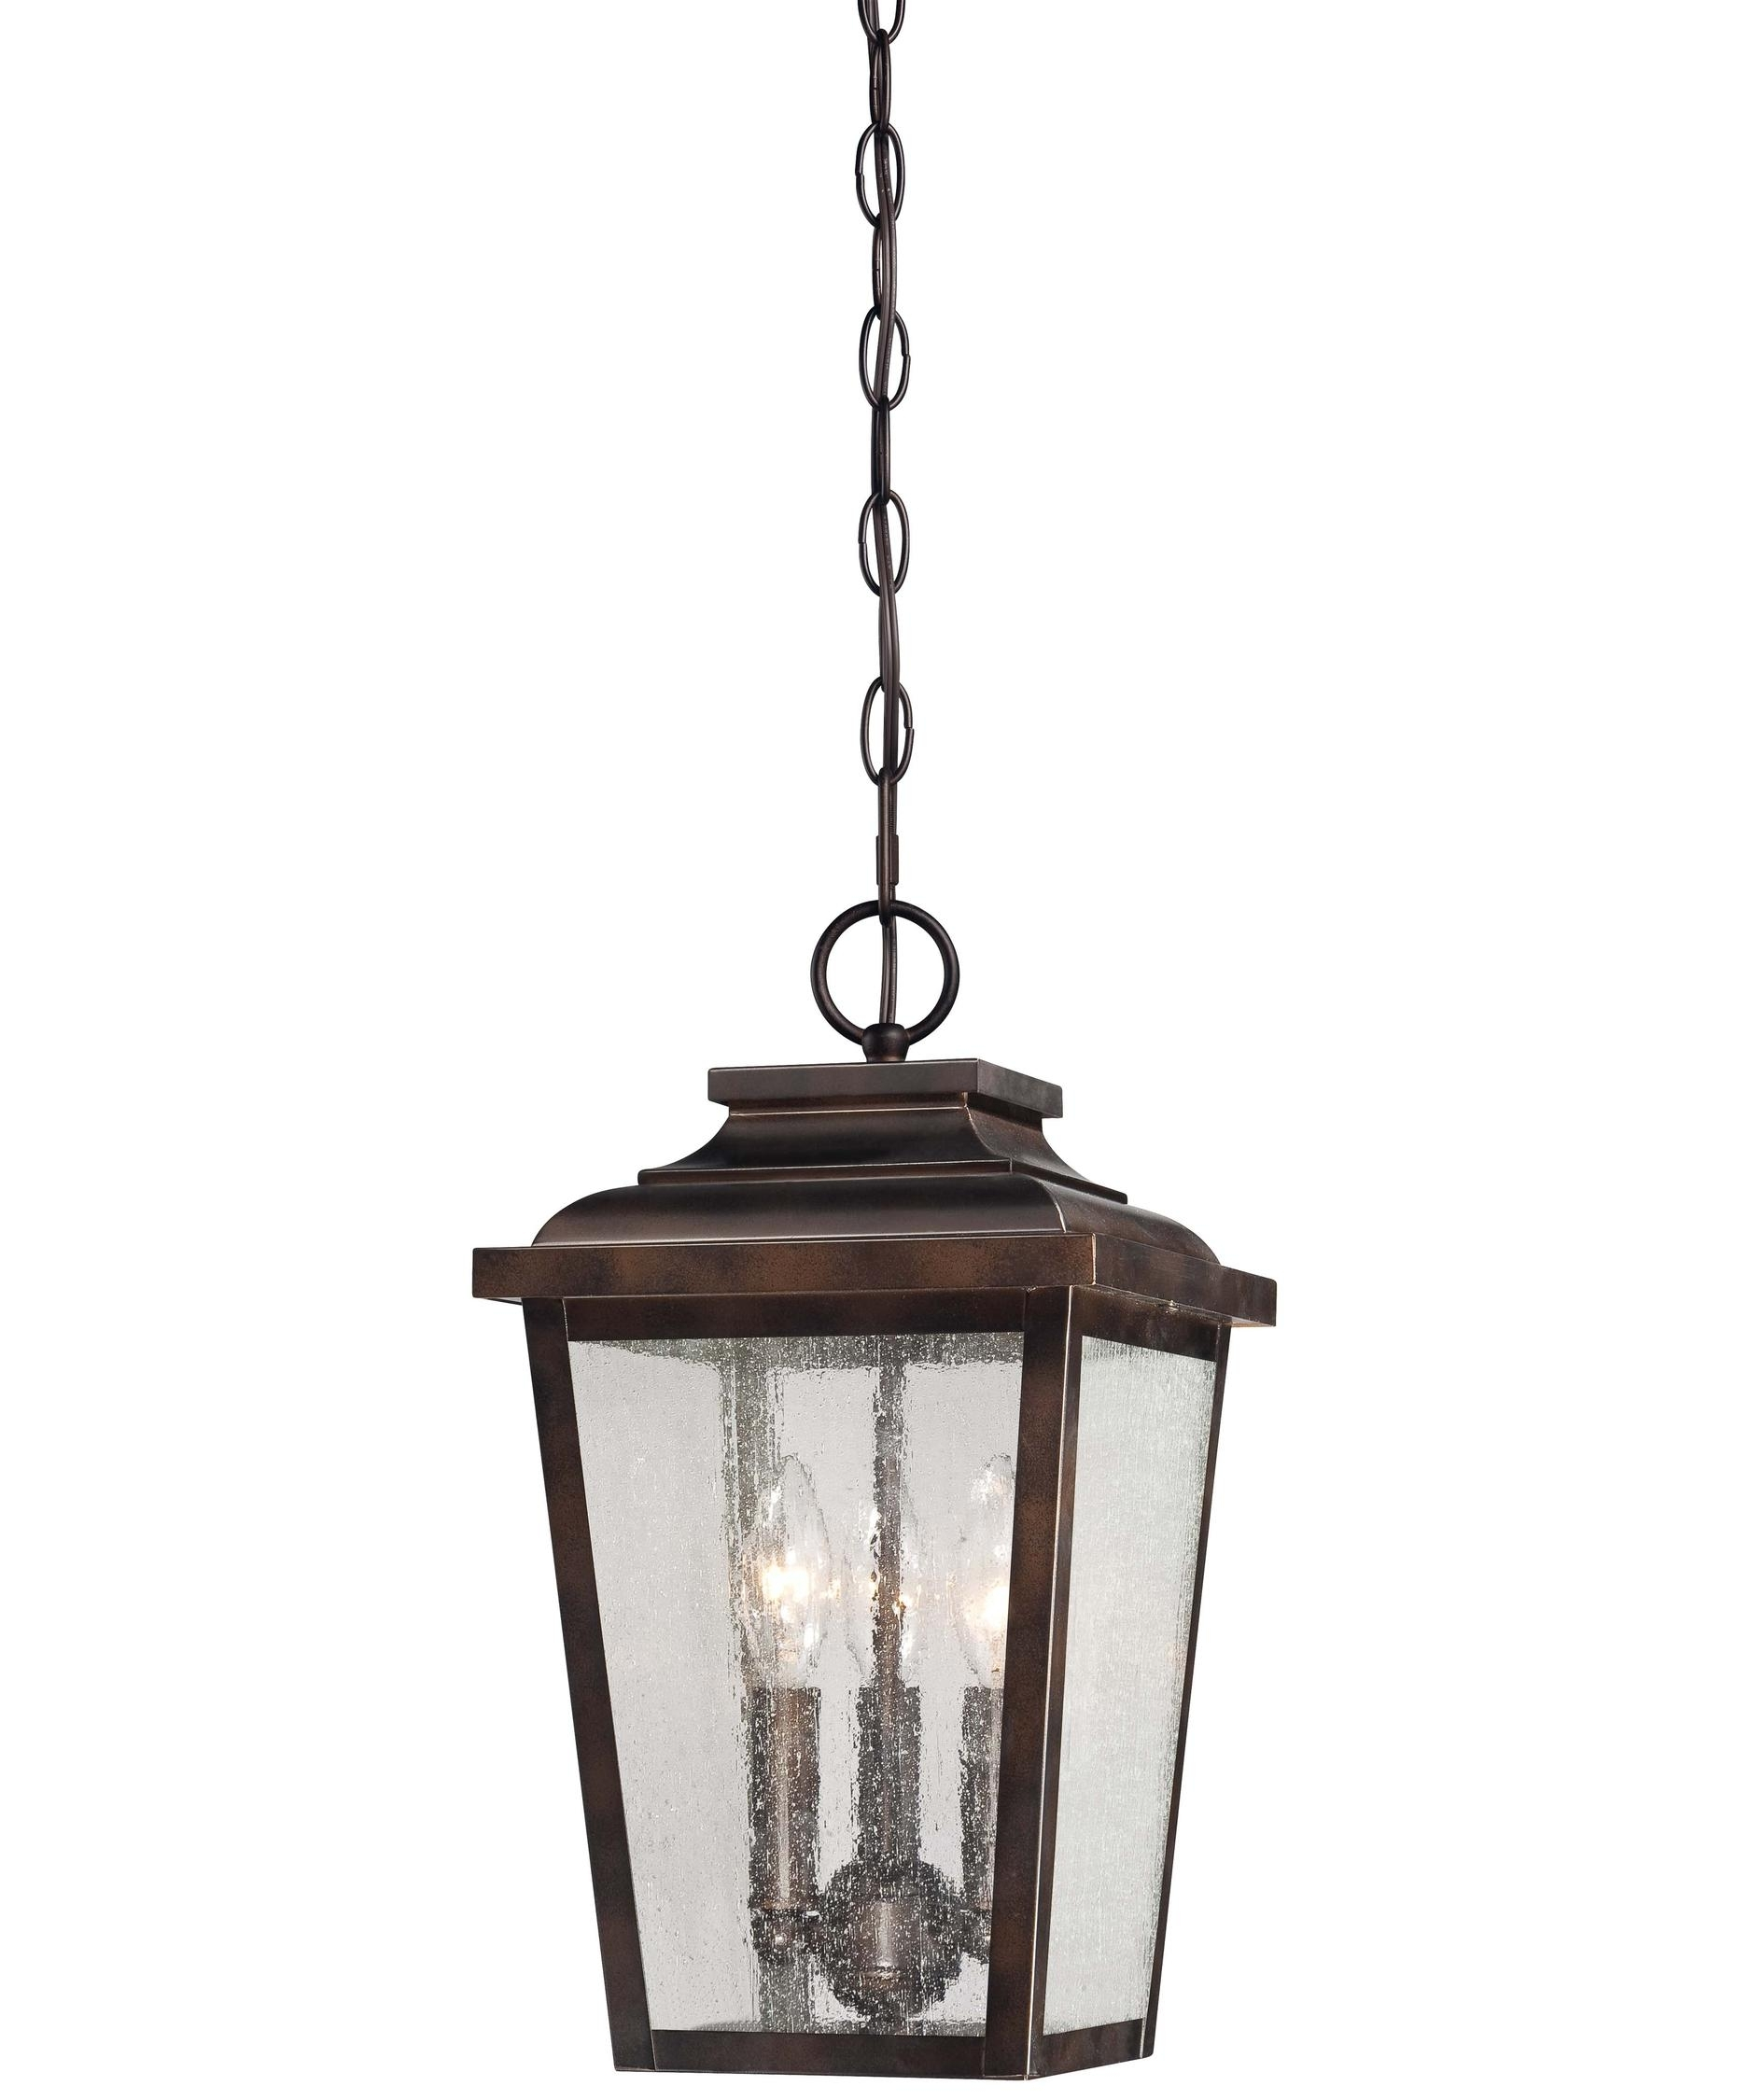 Minka Lavery 72174 Irvington Manor 9 Inch Wide 3 Light Outdoor intended for Outdoor Pendant Lanterns (Image 6 of 20)